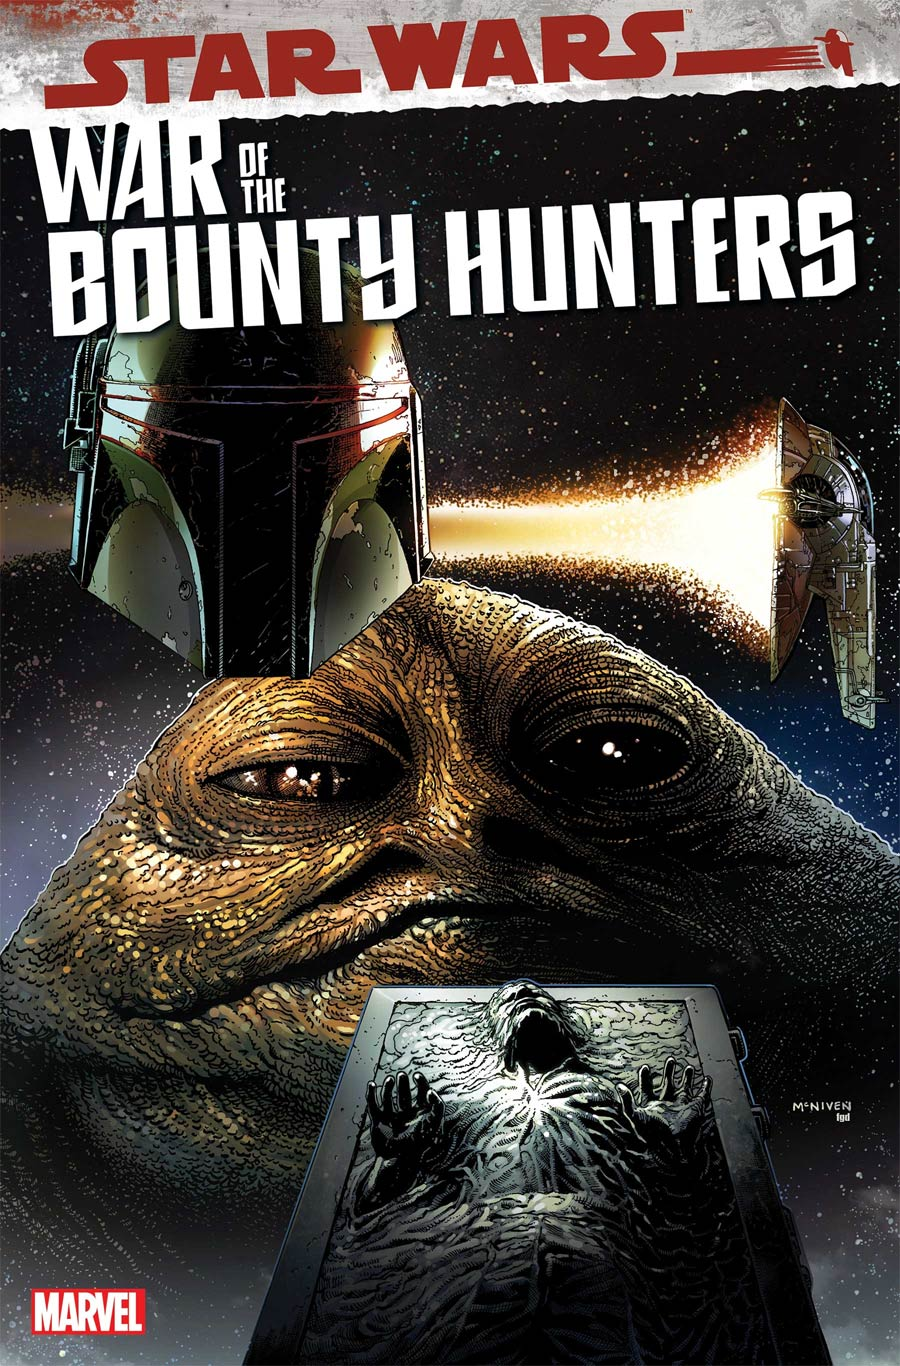 Star Wars War Of The Bounty Hunters #2 Cover A Regular Steve McNiven Cover